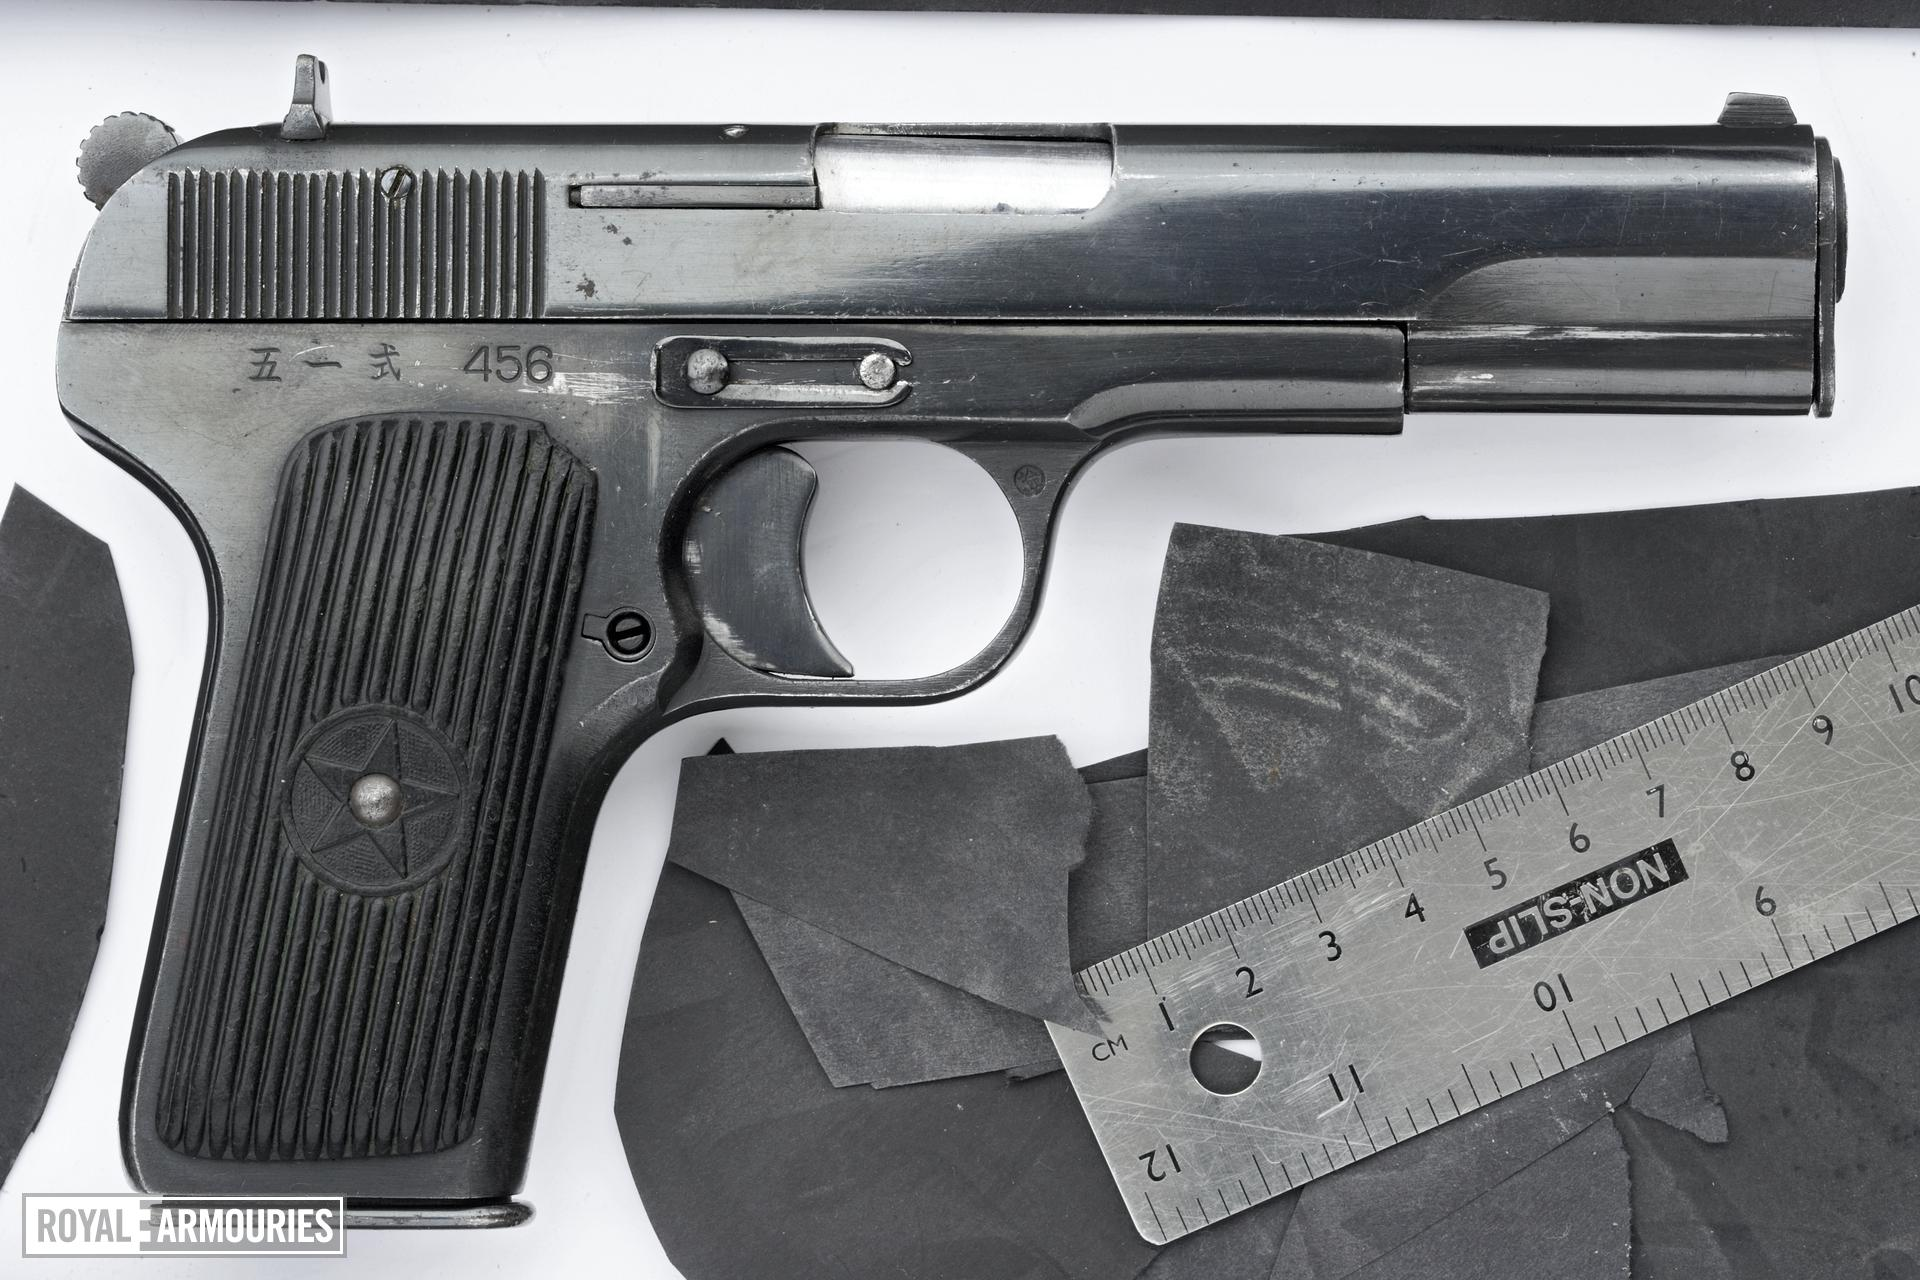 Centrefire self-loading deactivated pistol - Tokarev Type 51